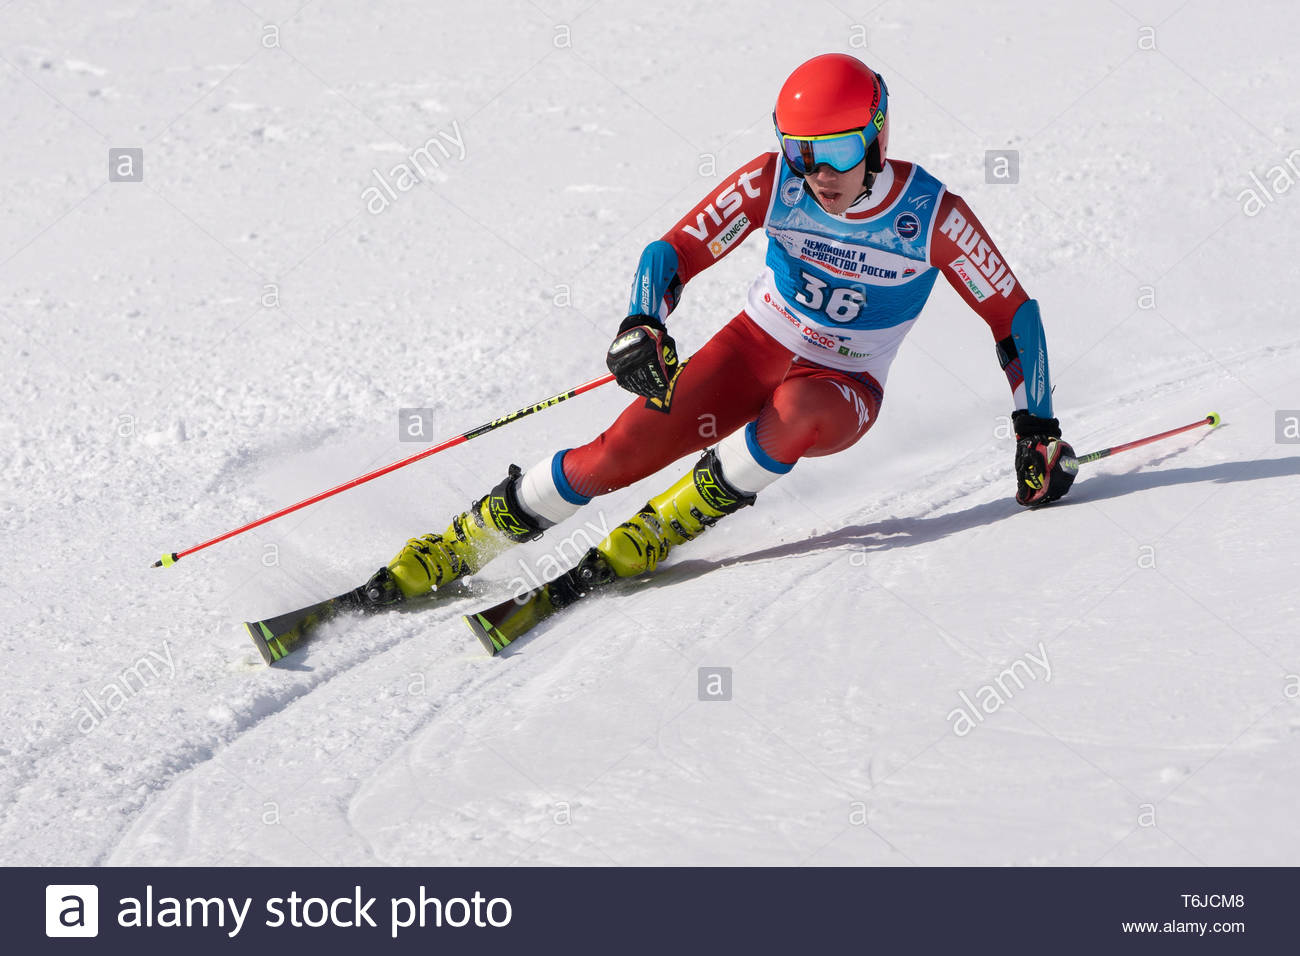 KAMCHATKA PENINSULA, RUSSIA - APR 1, 2019: Russian Alpine Skiing Cup, International Ski Federation (FIS) Championship, giant slalom. Mountain skier Na - Stock Image